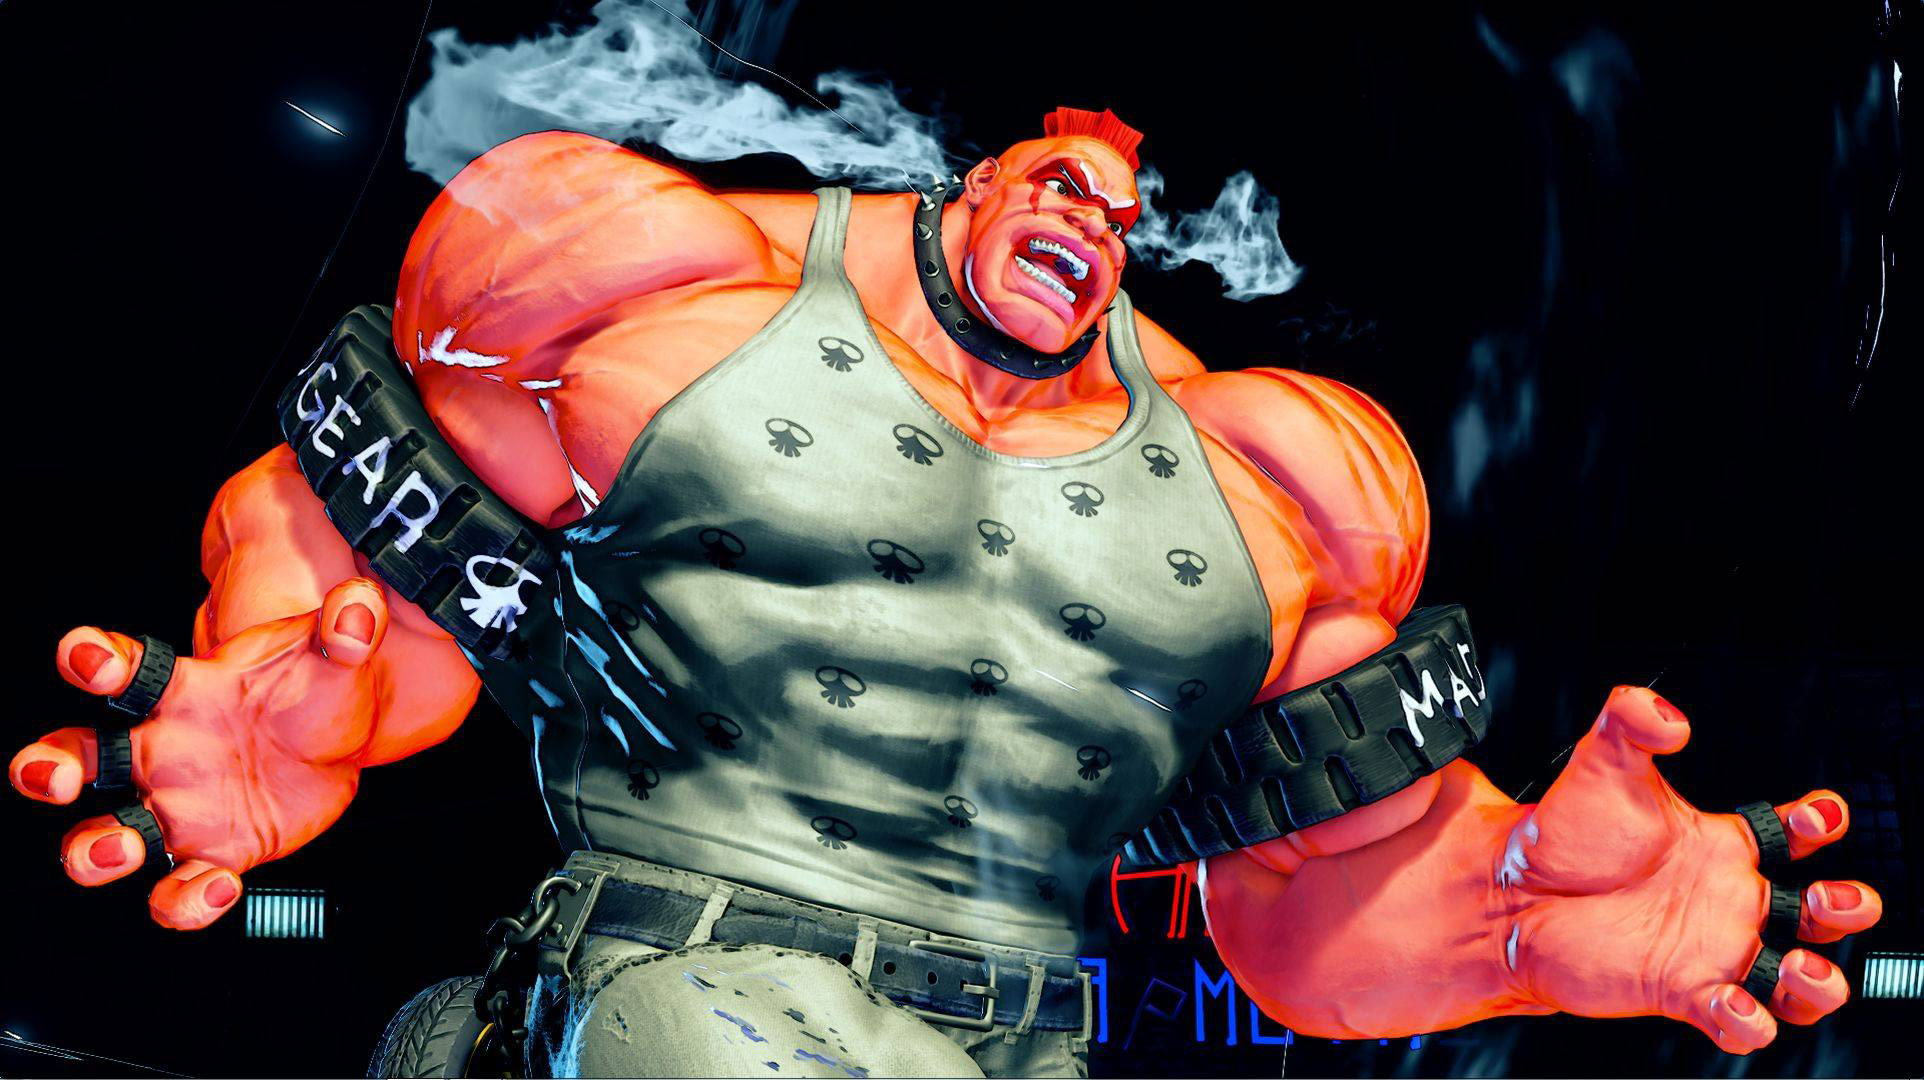 Abigail Street Fighter 5 11 out of 13 image gallery